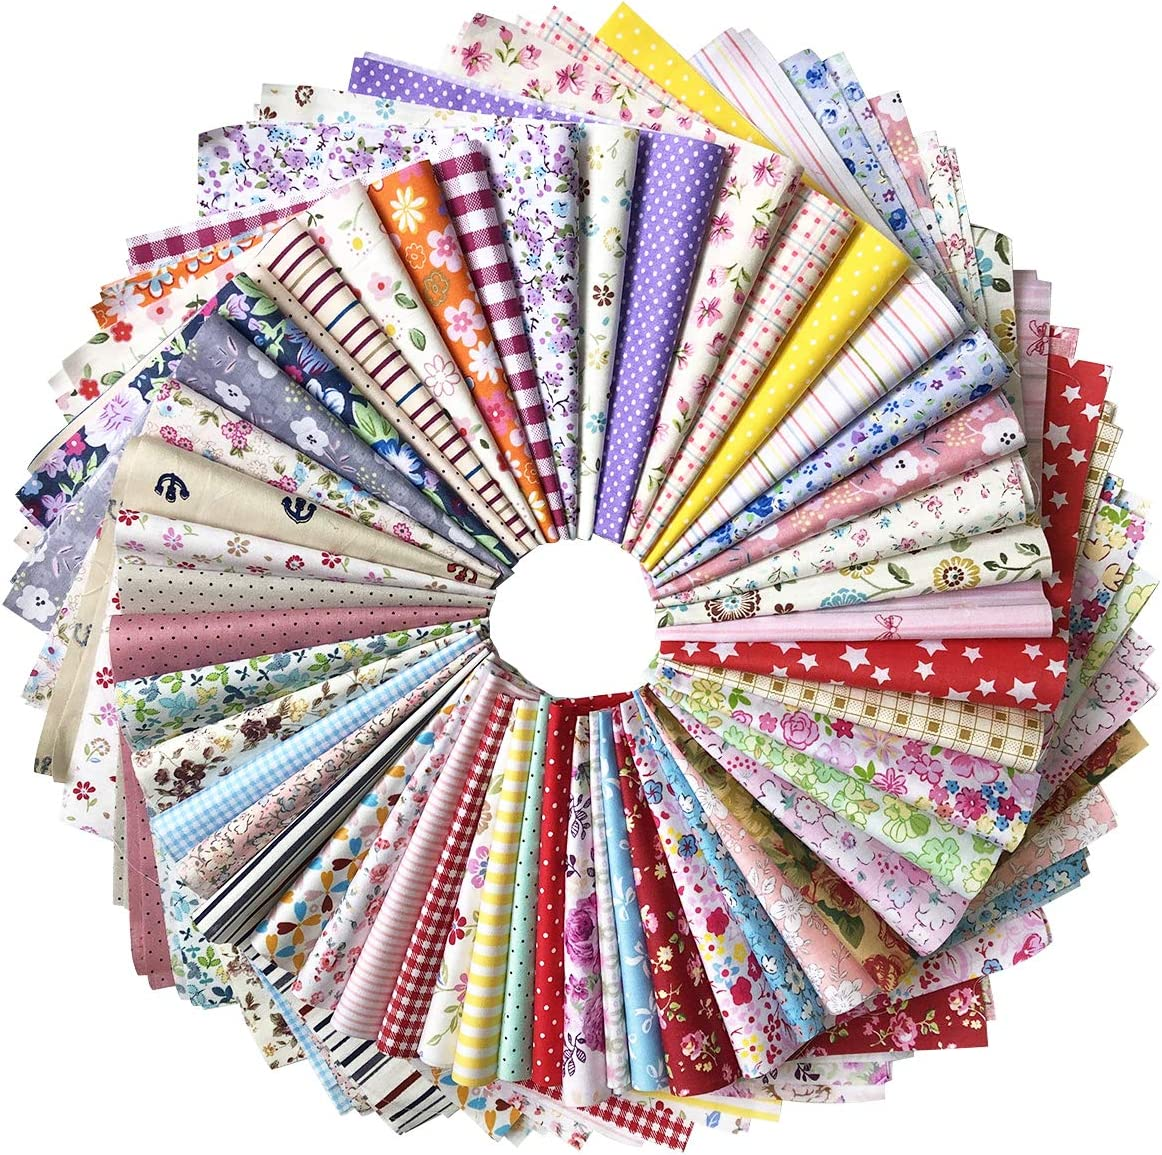 levylisa 50pcs Printed Cotton Quilting Fabric Assorted Craft Fabric Bundle Squares Patchwork Precut Fabric for DIY Craft Embellishment Sewing Scrapbooking Quilting (12''x12'')